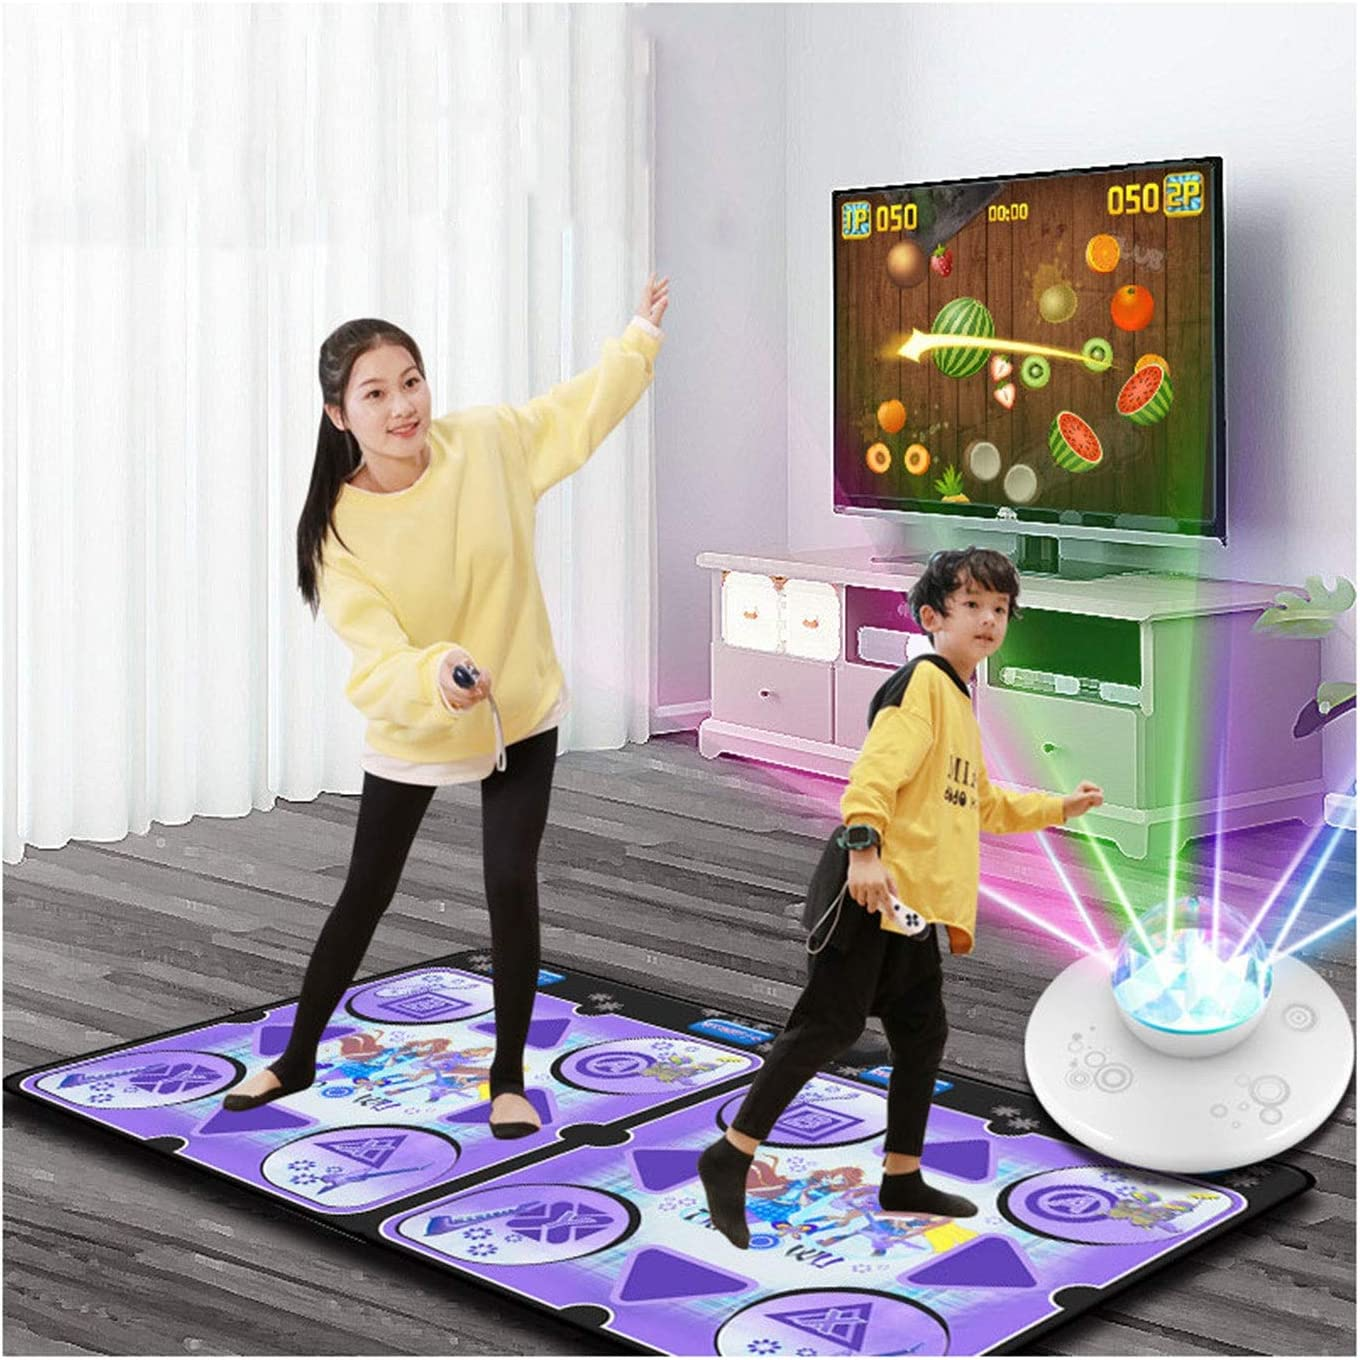 Free Shipping New ACD Non-Slip Durable Wear-Resistant Dancing Pad Mat Dance Step Las Vegas Mall P